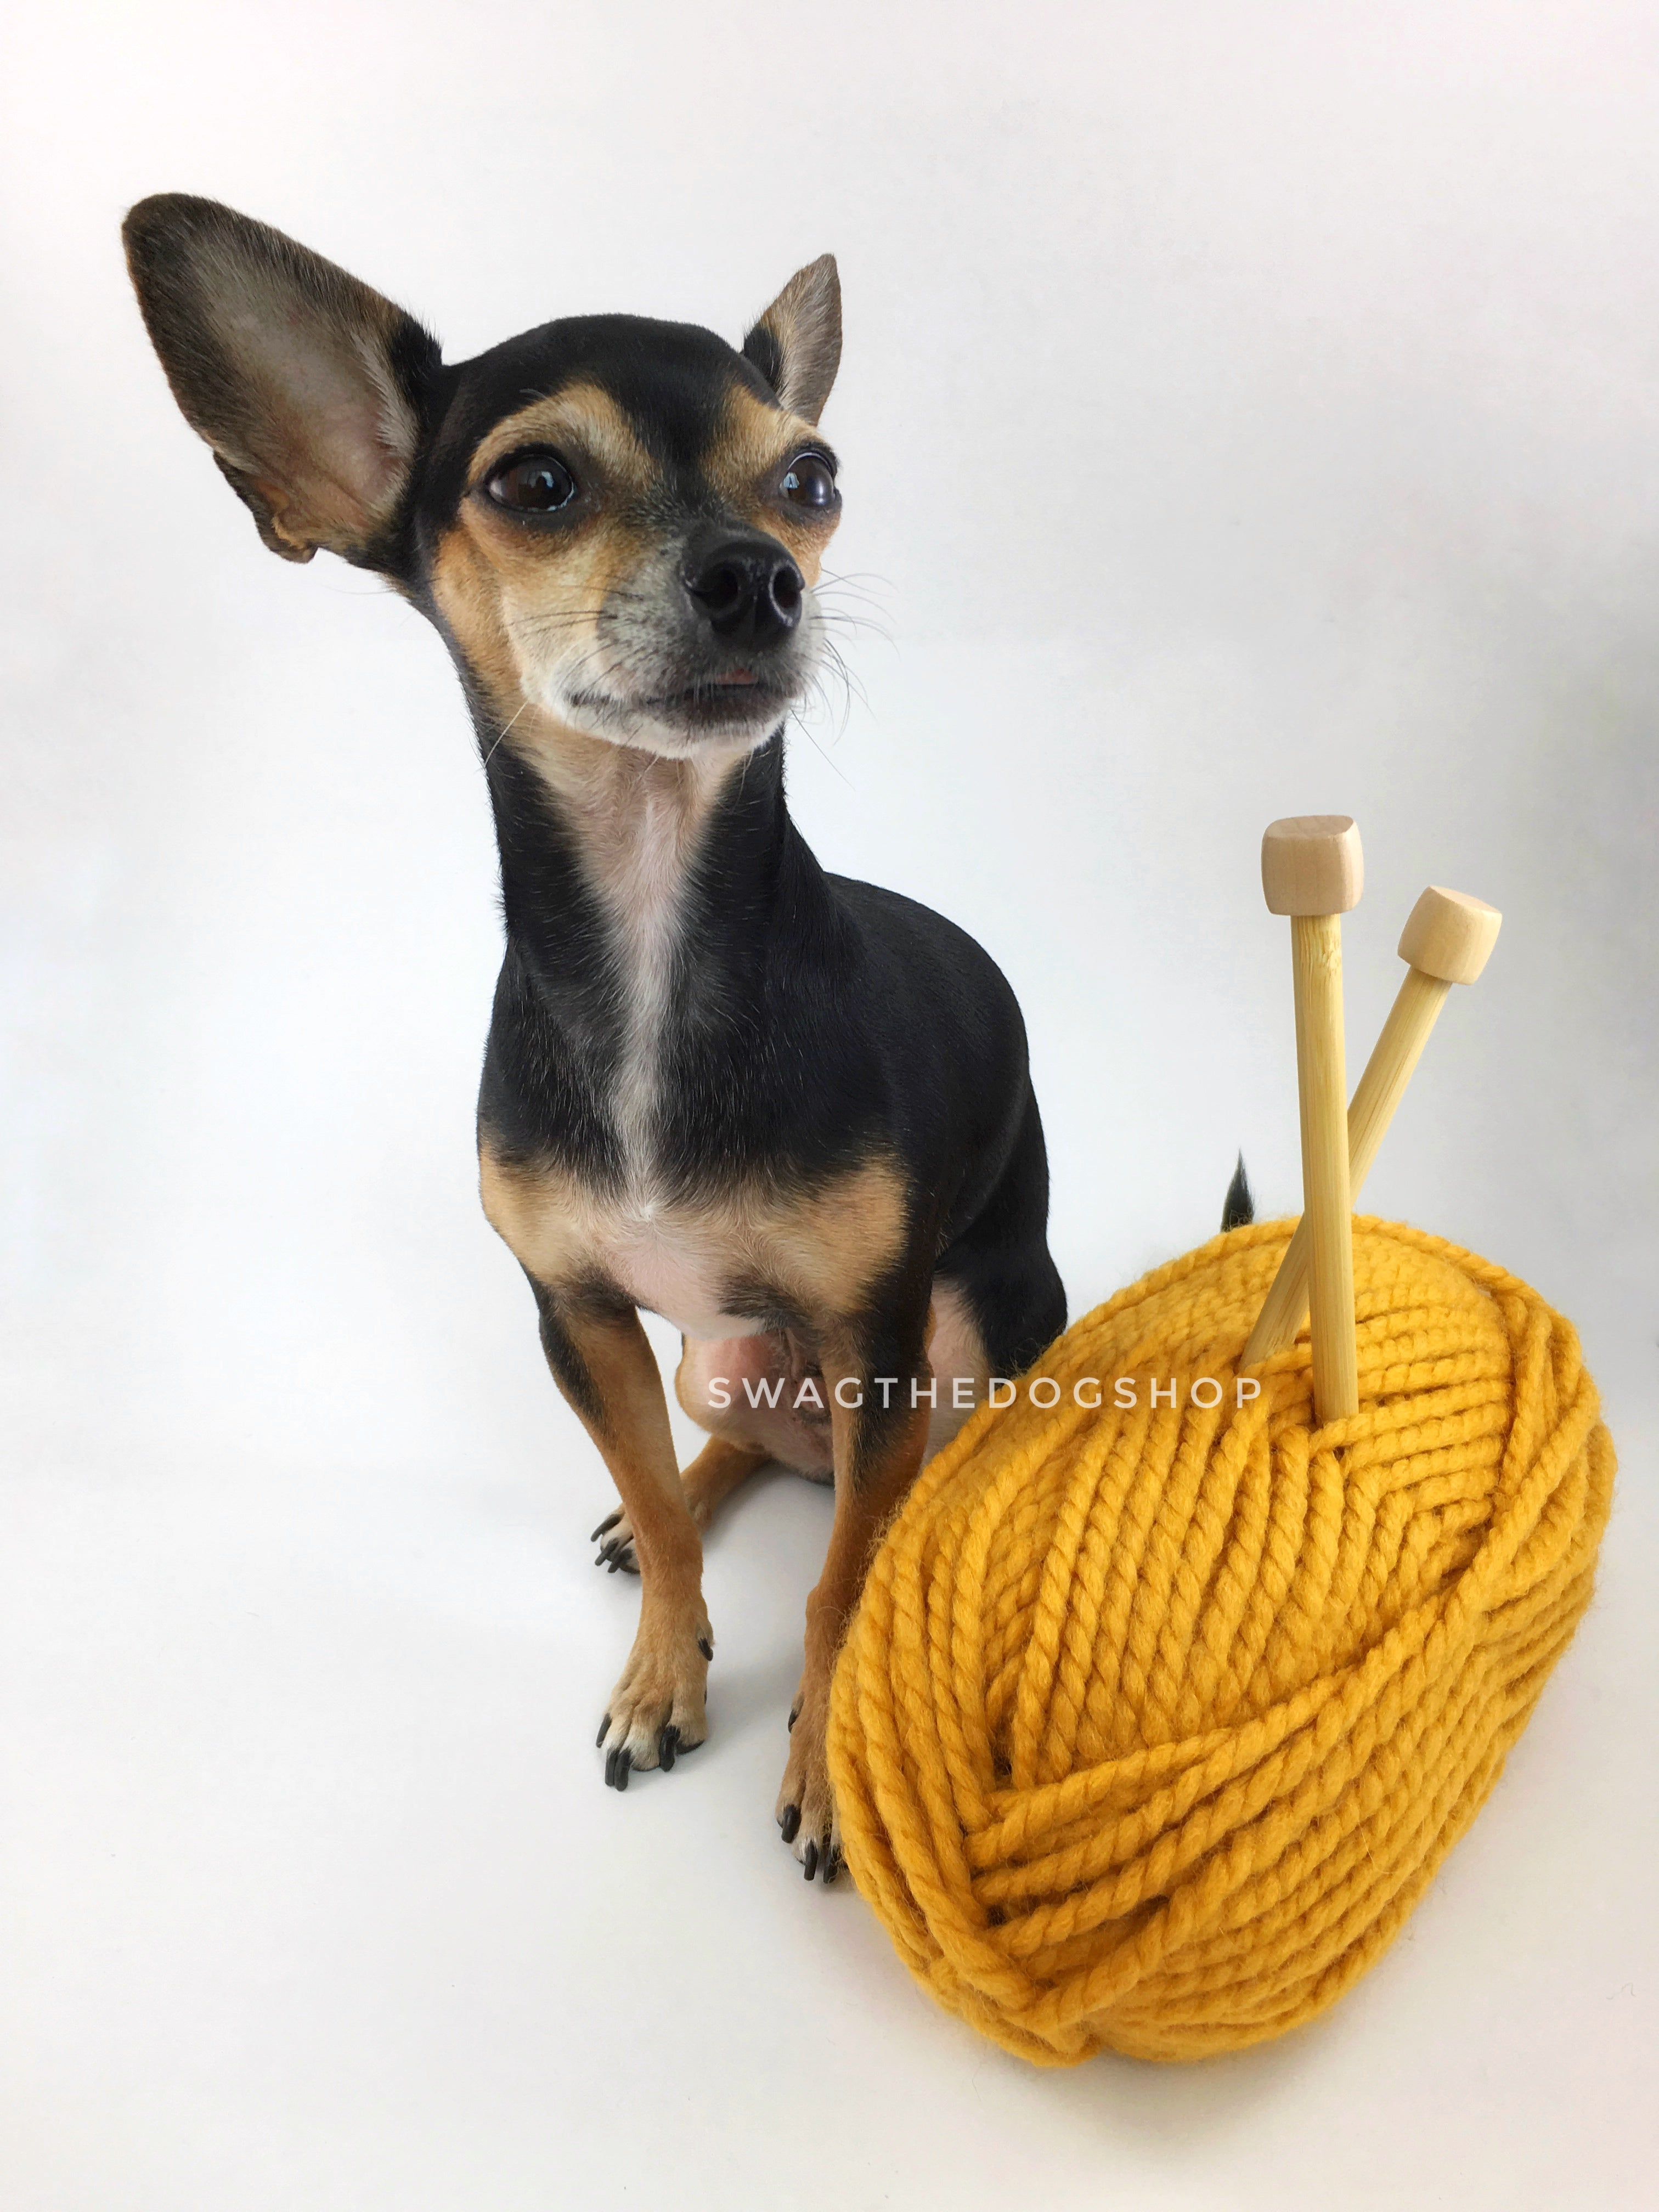 Mustard Yellow Swagsnood - Yarn with Cute Chihuahua Dog. Mustard Yellow Color Dog Snood with Accent Button